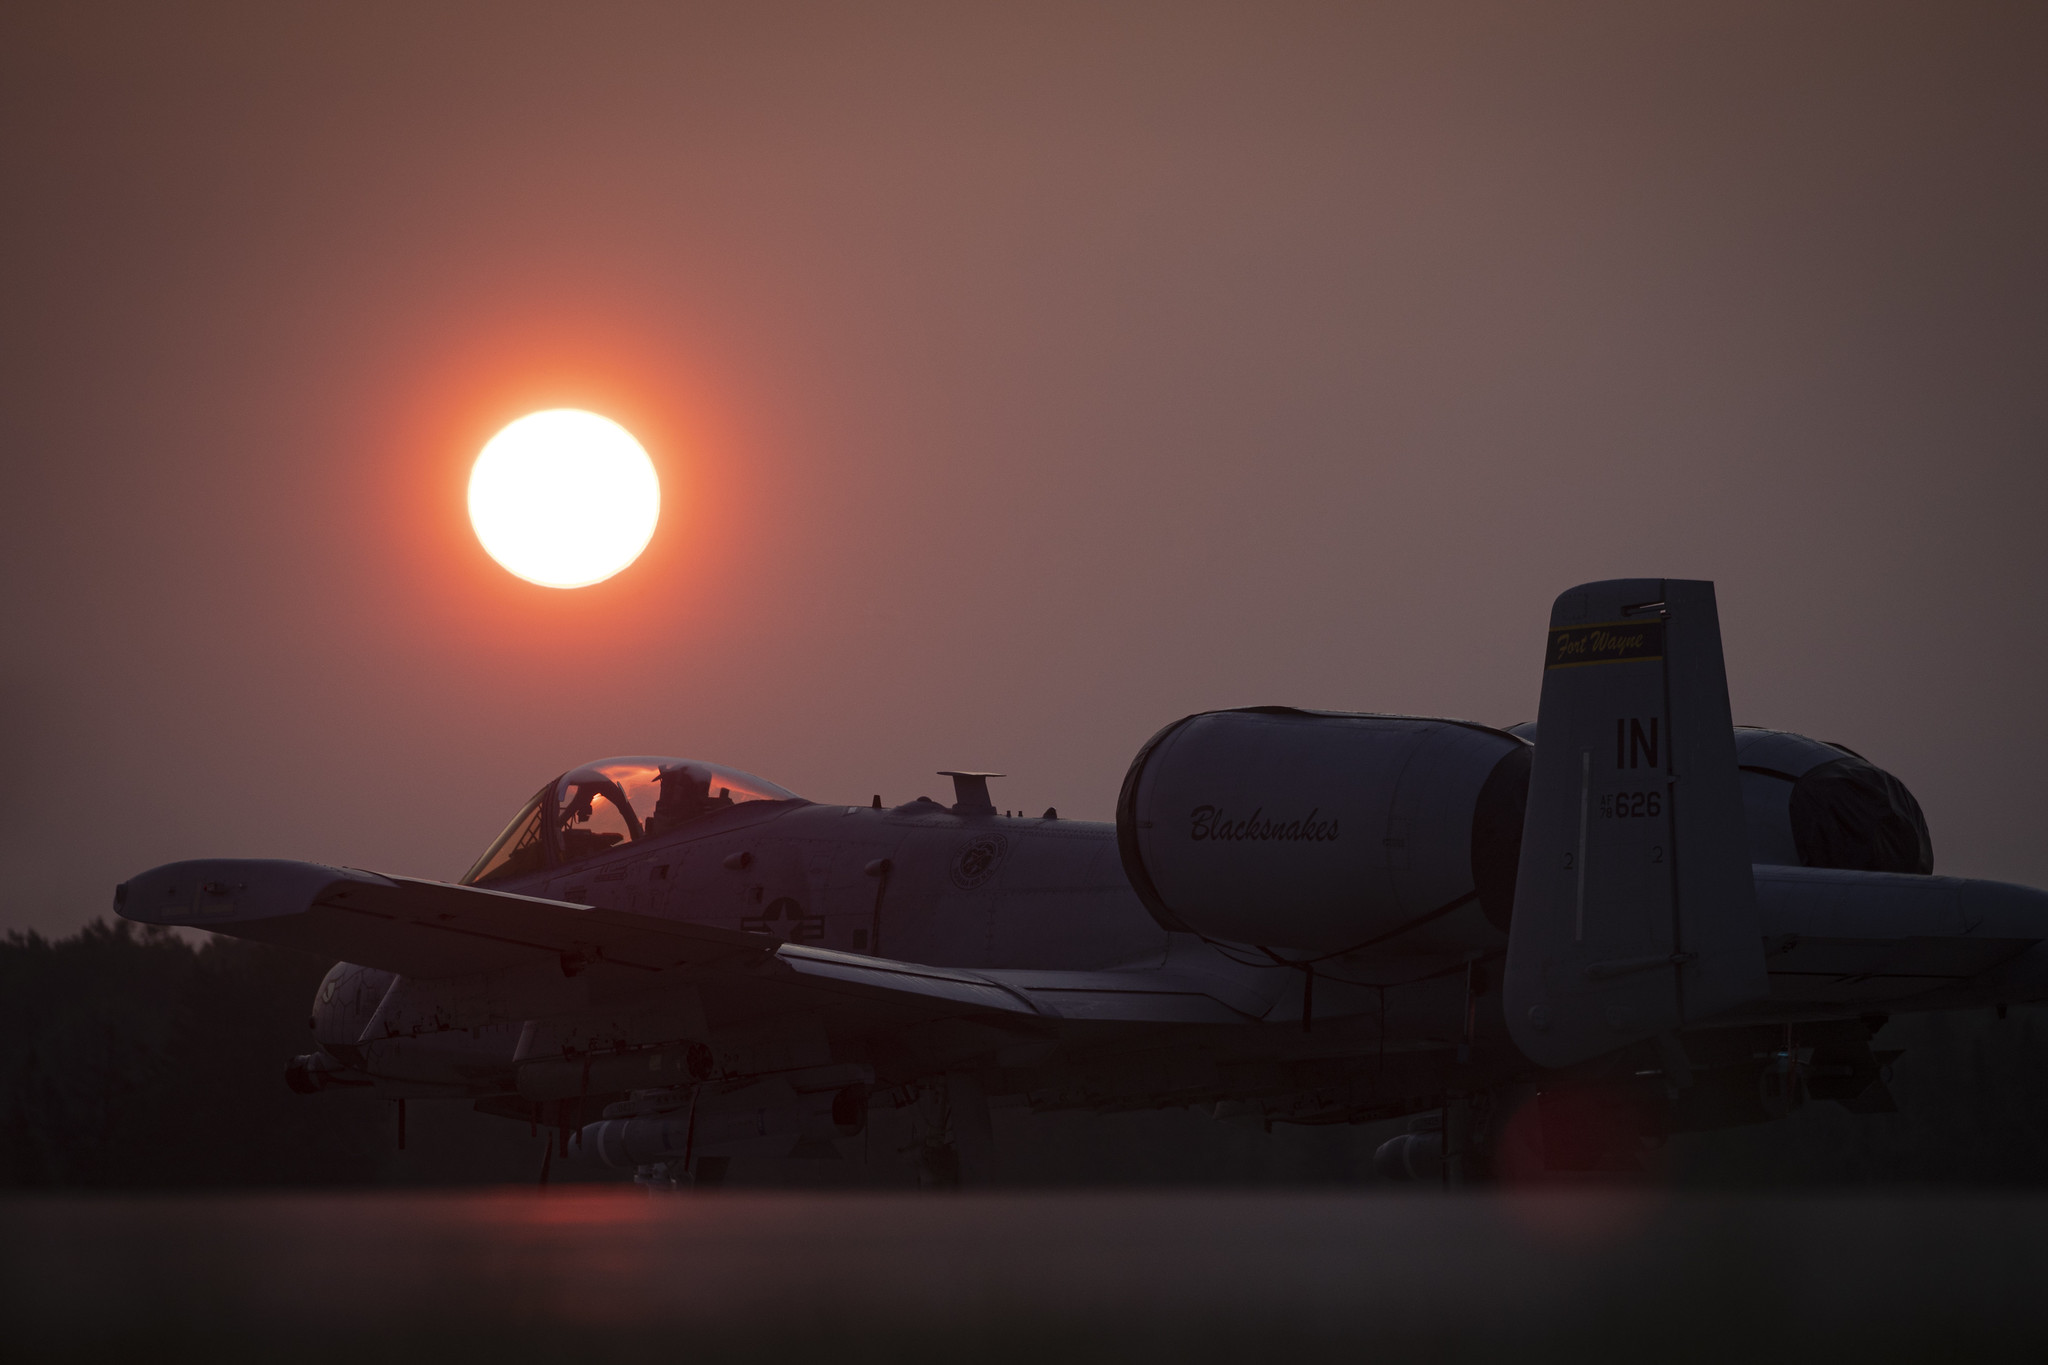 An Air Force A-10C Thunderbolt II sits on the flightline at sunrise during Northern Strike 19 at the Alpena Combat Readiness Training Center, Mich., July 26, 2019. (Master Sgt. Matt Hecht/Air National Guard)